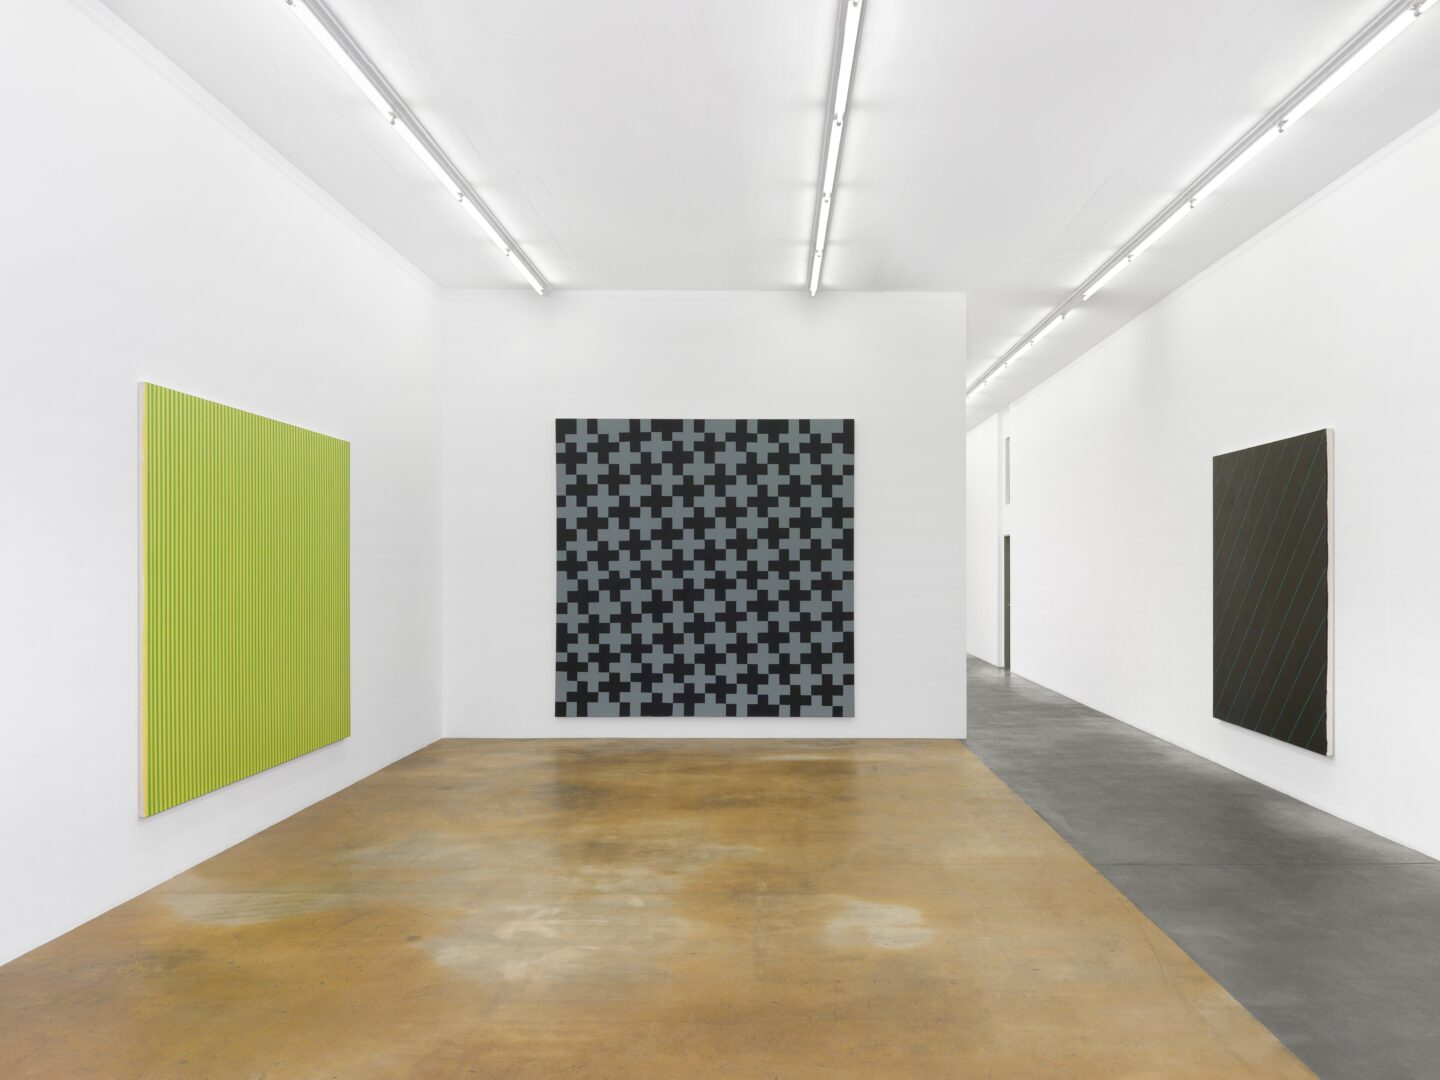 Exhibition View Olivier Mosset Soloshow at MAMCO, Geneva, 2020 / Photo: Annik Wetter / Courtesy: the artist and MAMCO